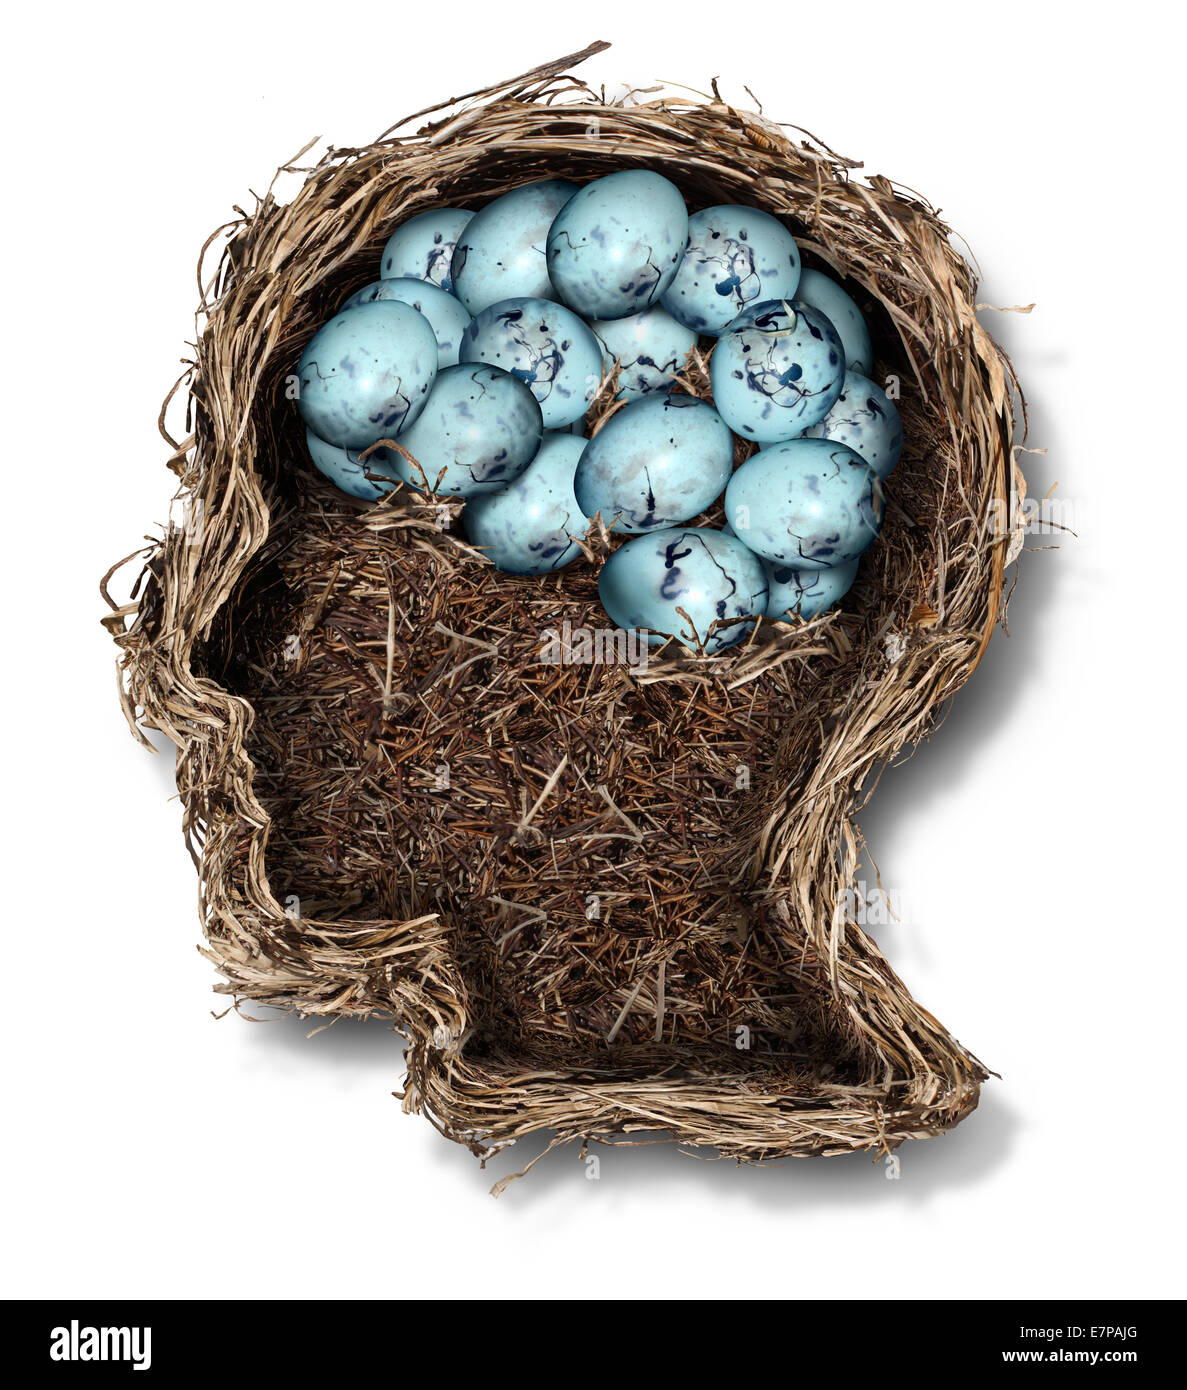 Protecting the brain mental health concept as a bird nest shaped as a human head and face with a group of eggs in - Stock Image